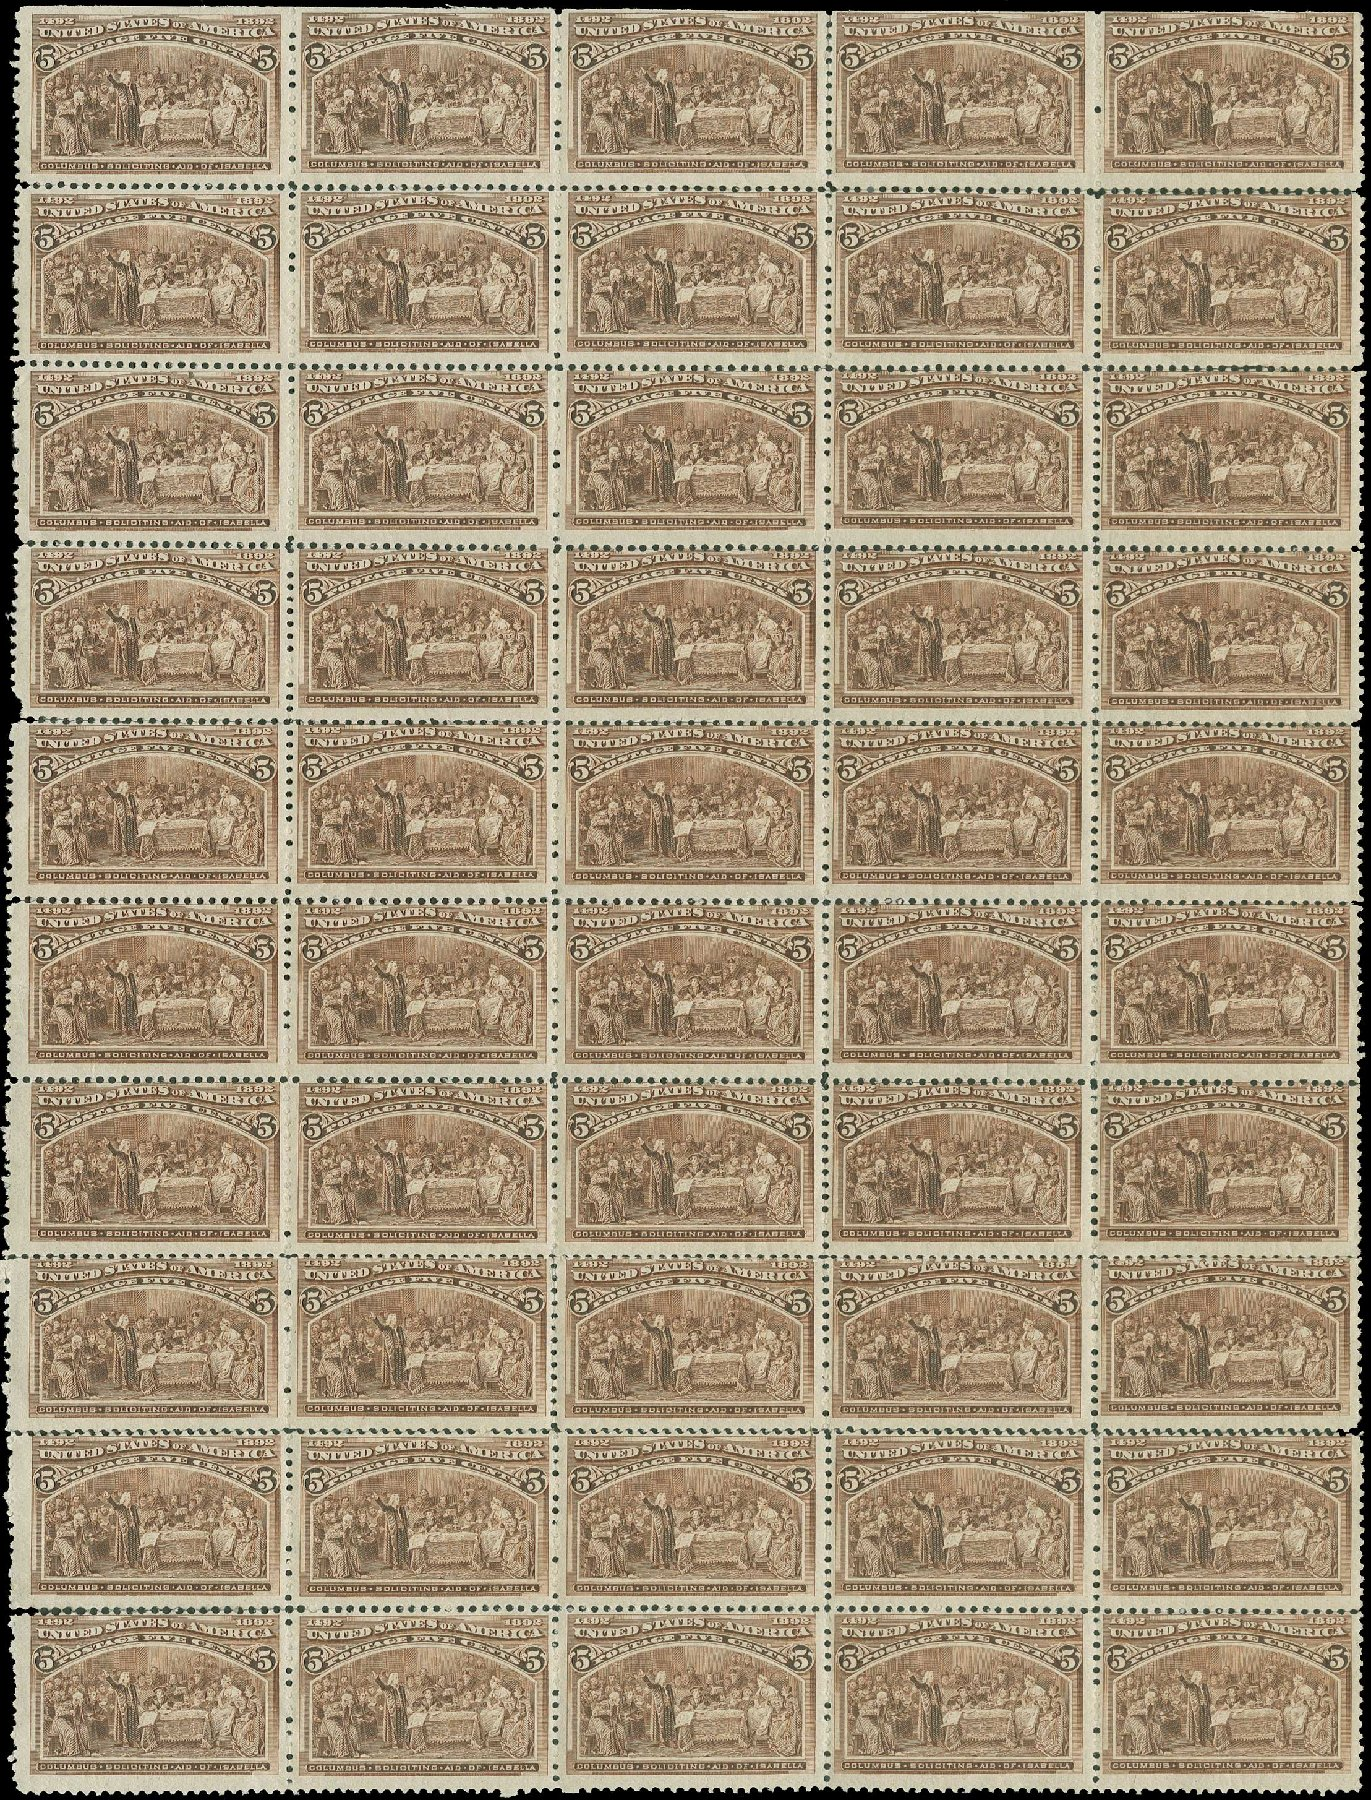 Prices of US Stamp Scott Catalogue 234: 5c 1893 Columbian Exposition. H.R. Harmer, Jun 2015, Sale 3007, Lot 3241